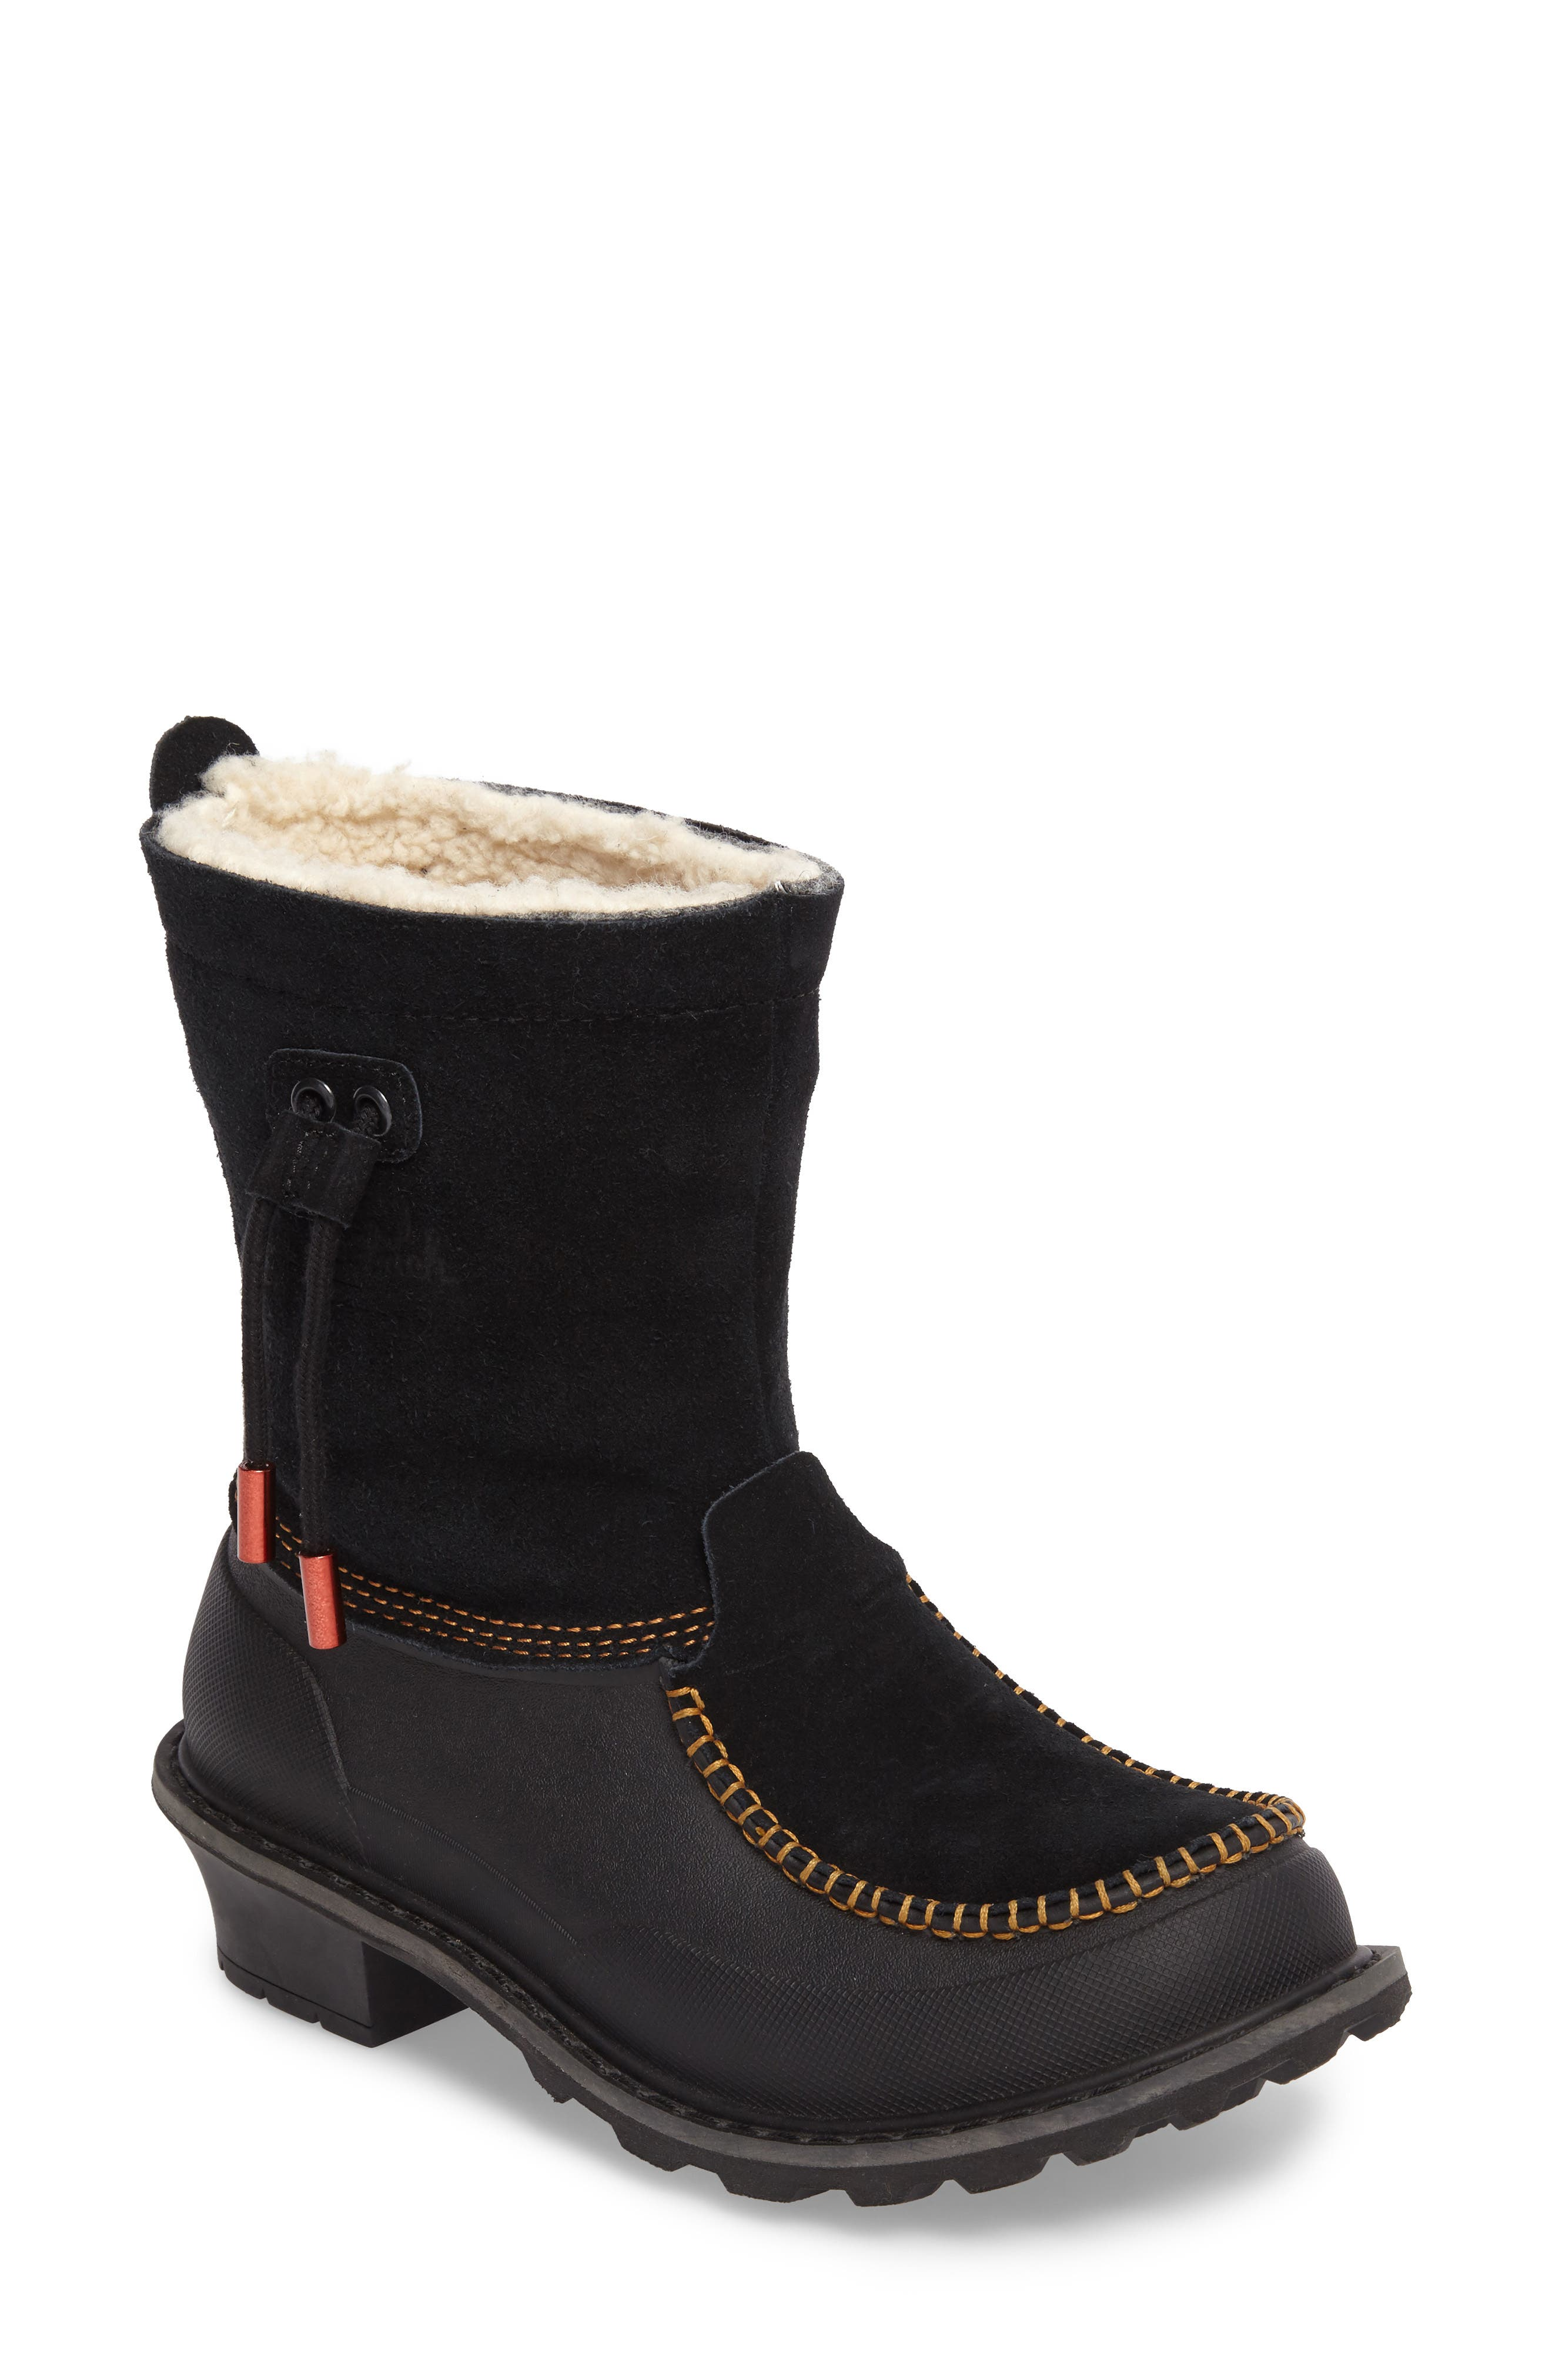 Fully Wooly Waterproof Winter Boot,                         Main,                         color, Black Leather